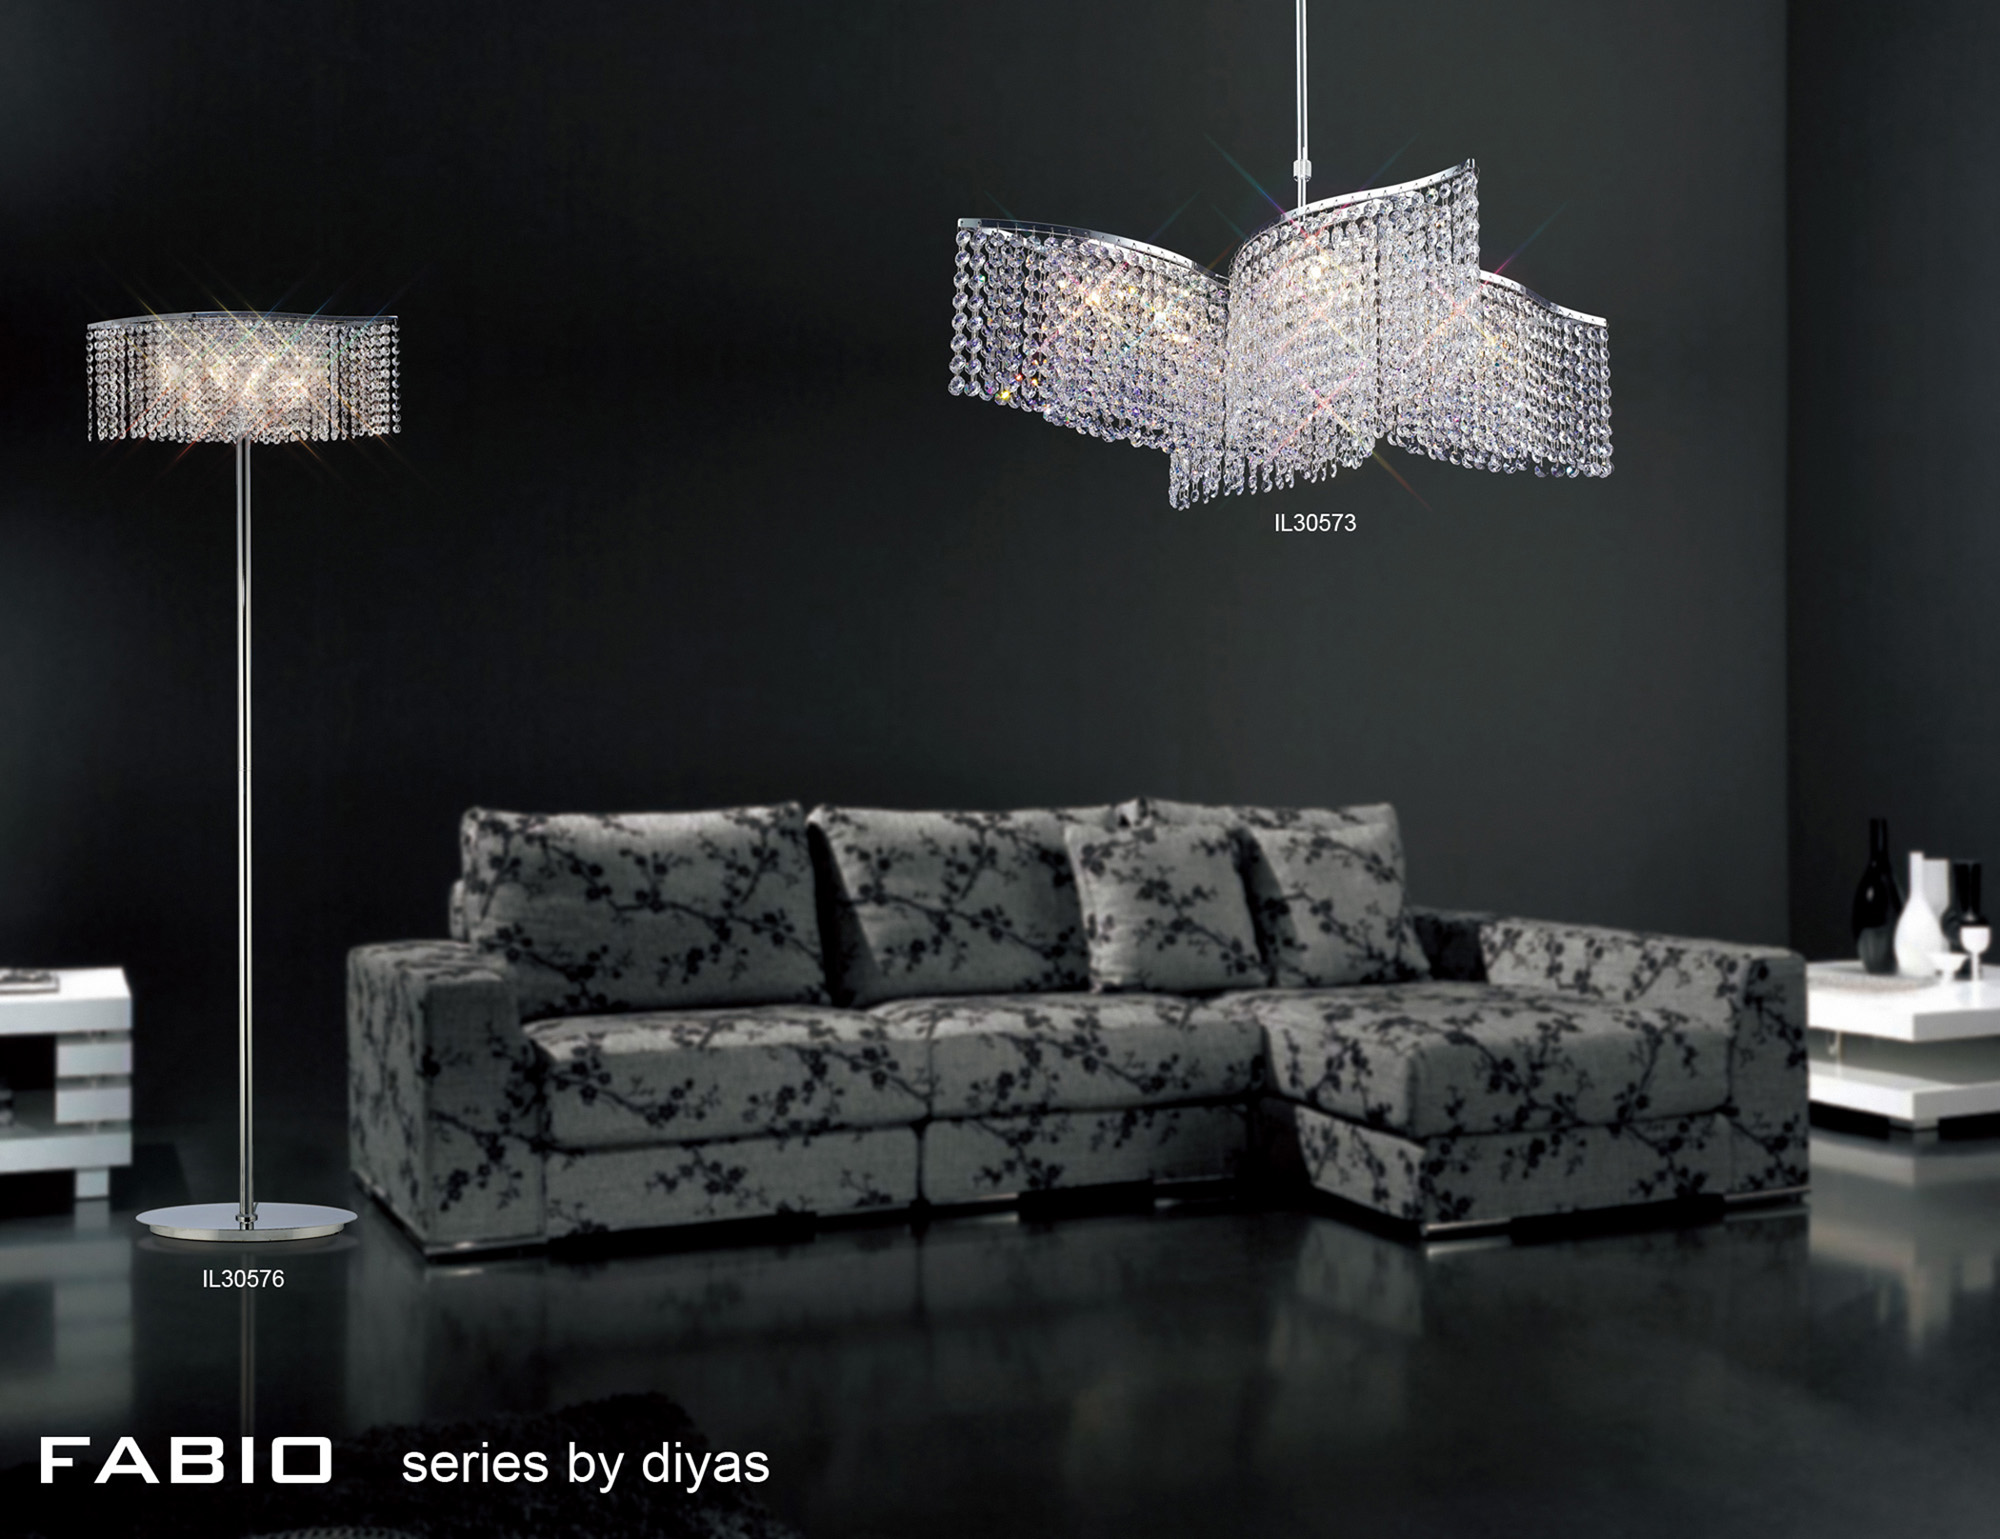 Fabio Crystal Floor Lamps Diyas Modern Crystal Floor Lamps